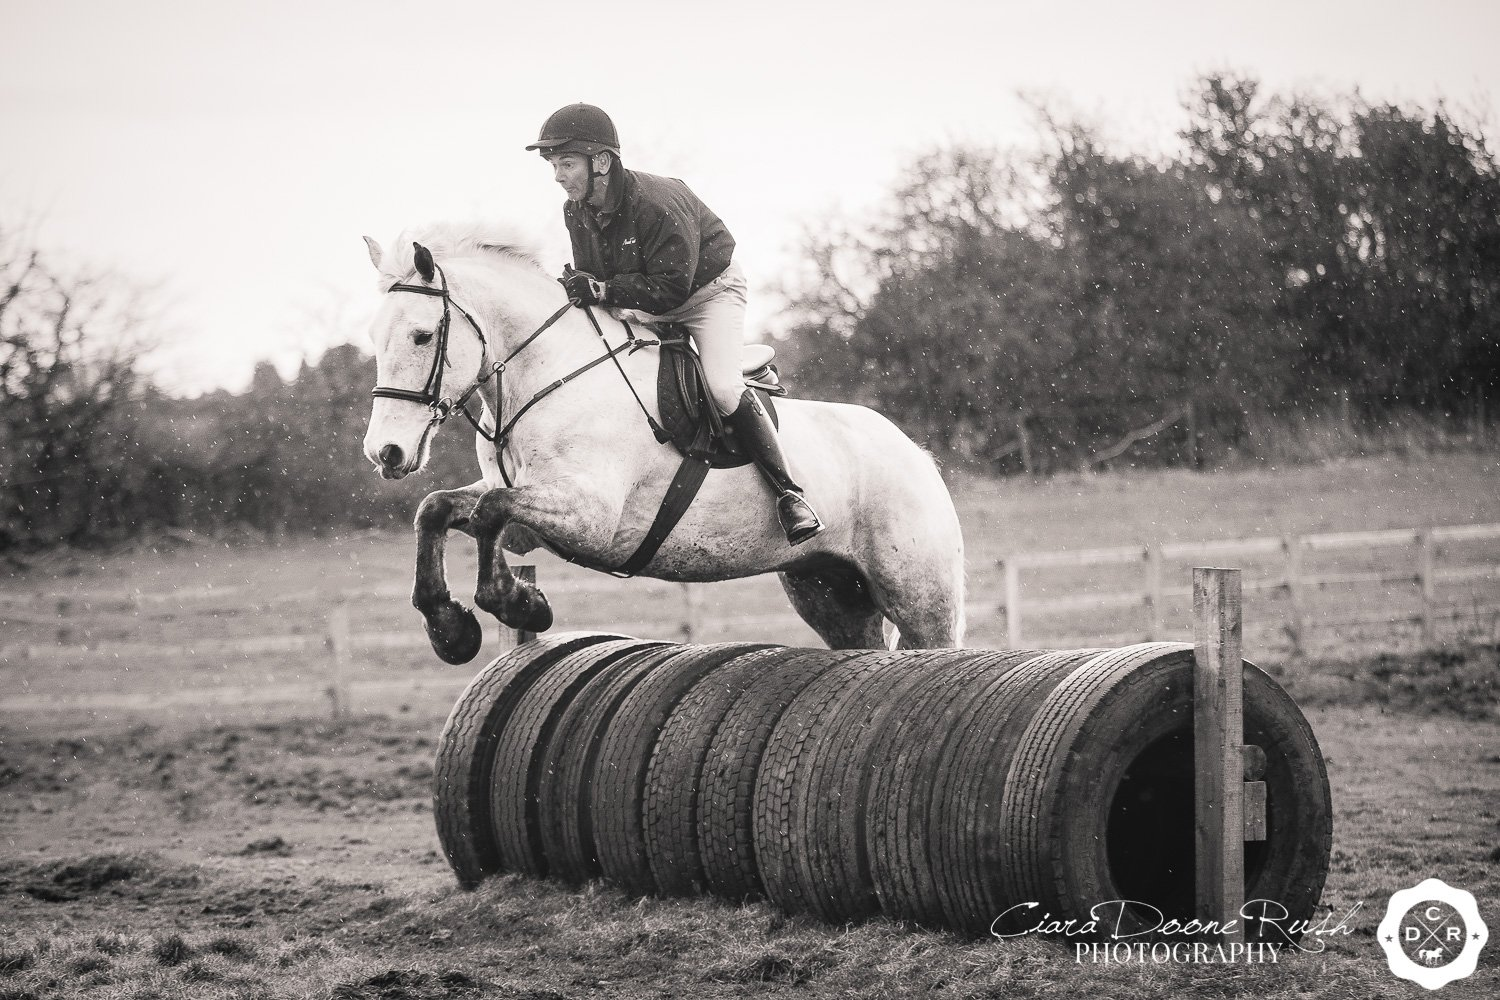 A grey horse jumping a tyre fence